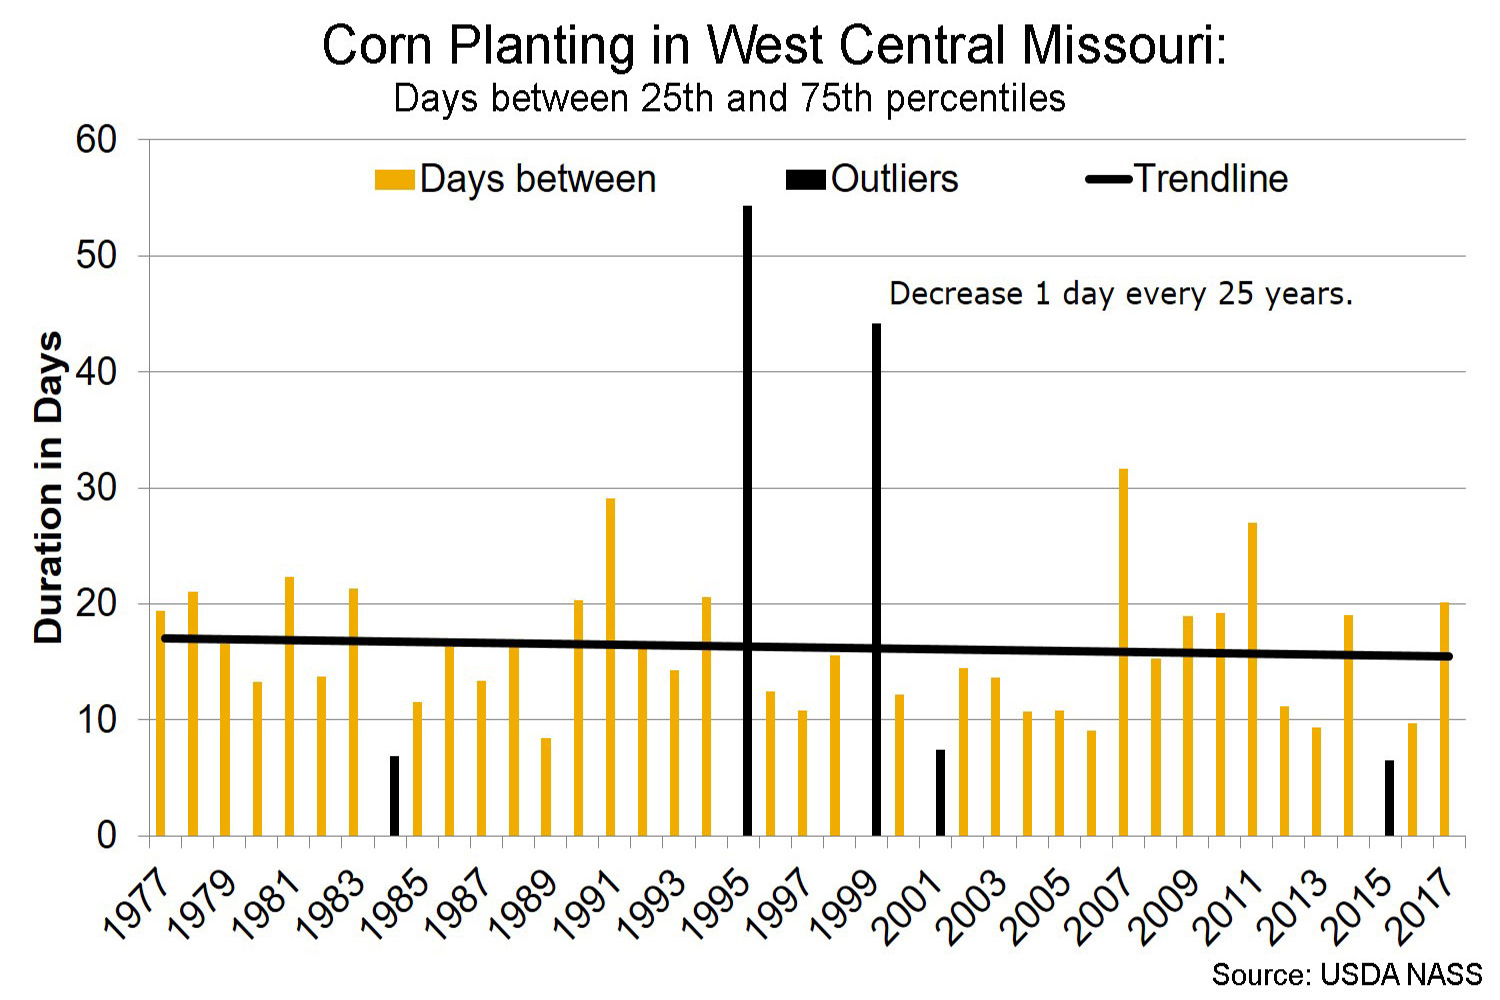 Corn planting in west central Missouri days between 25th and 75th percentiles chart